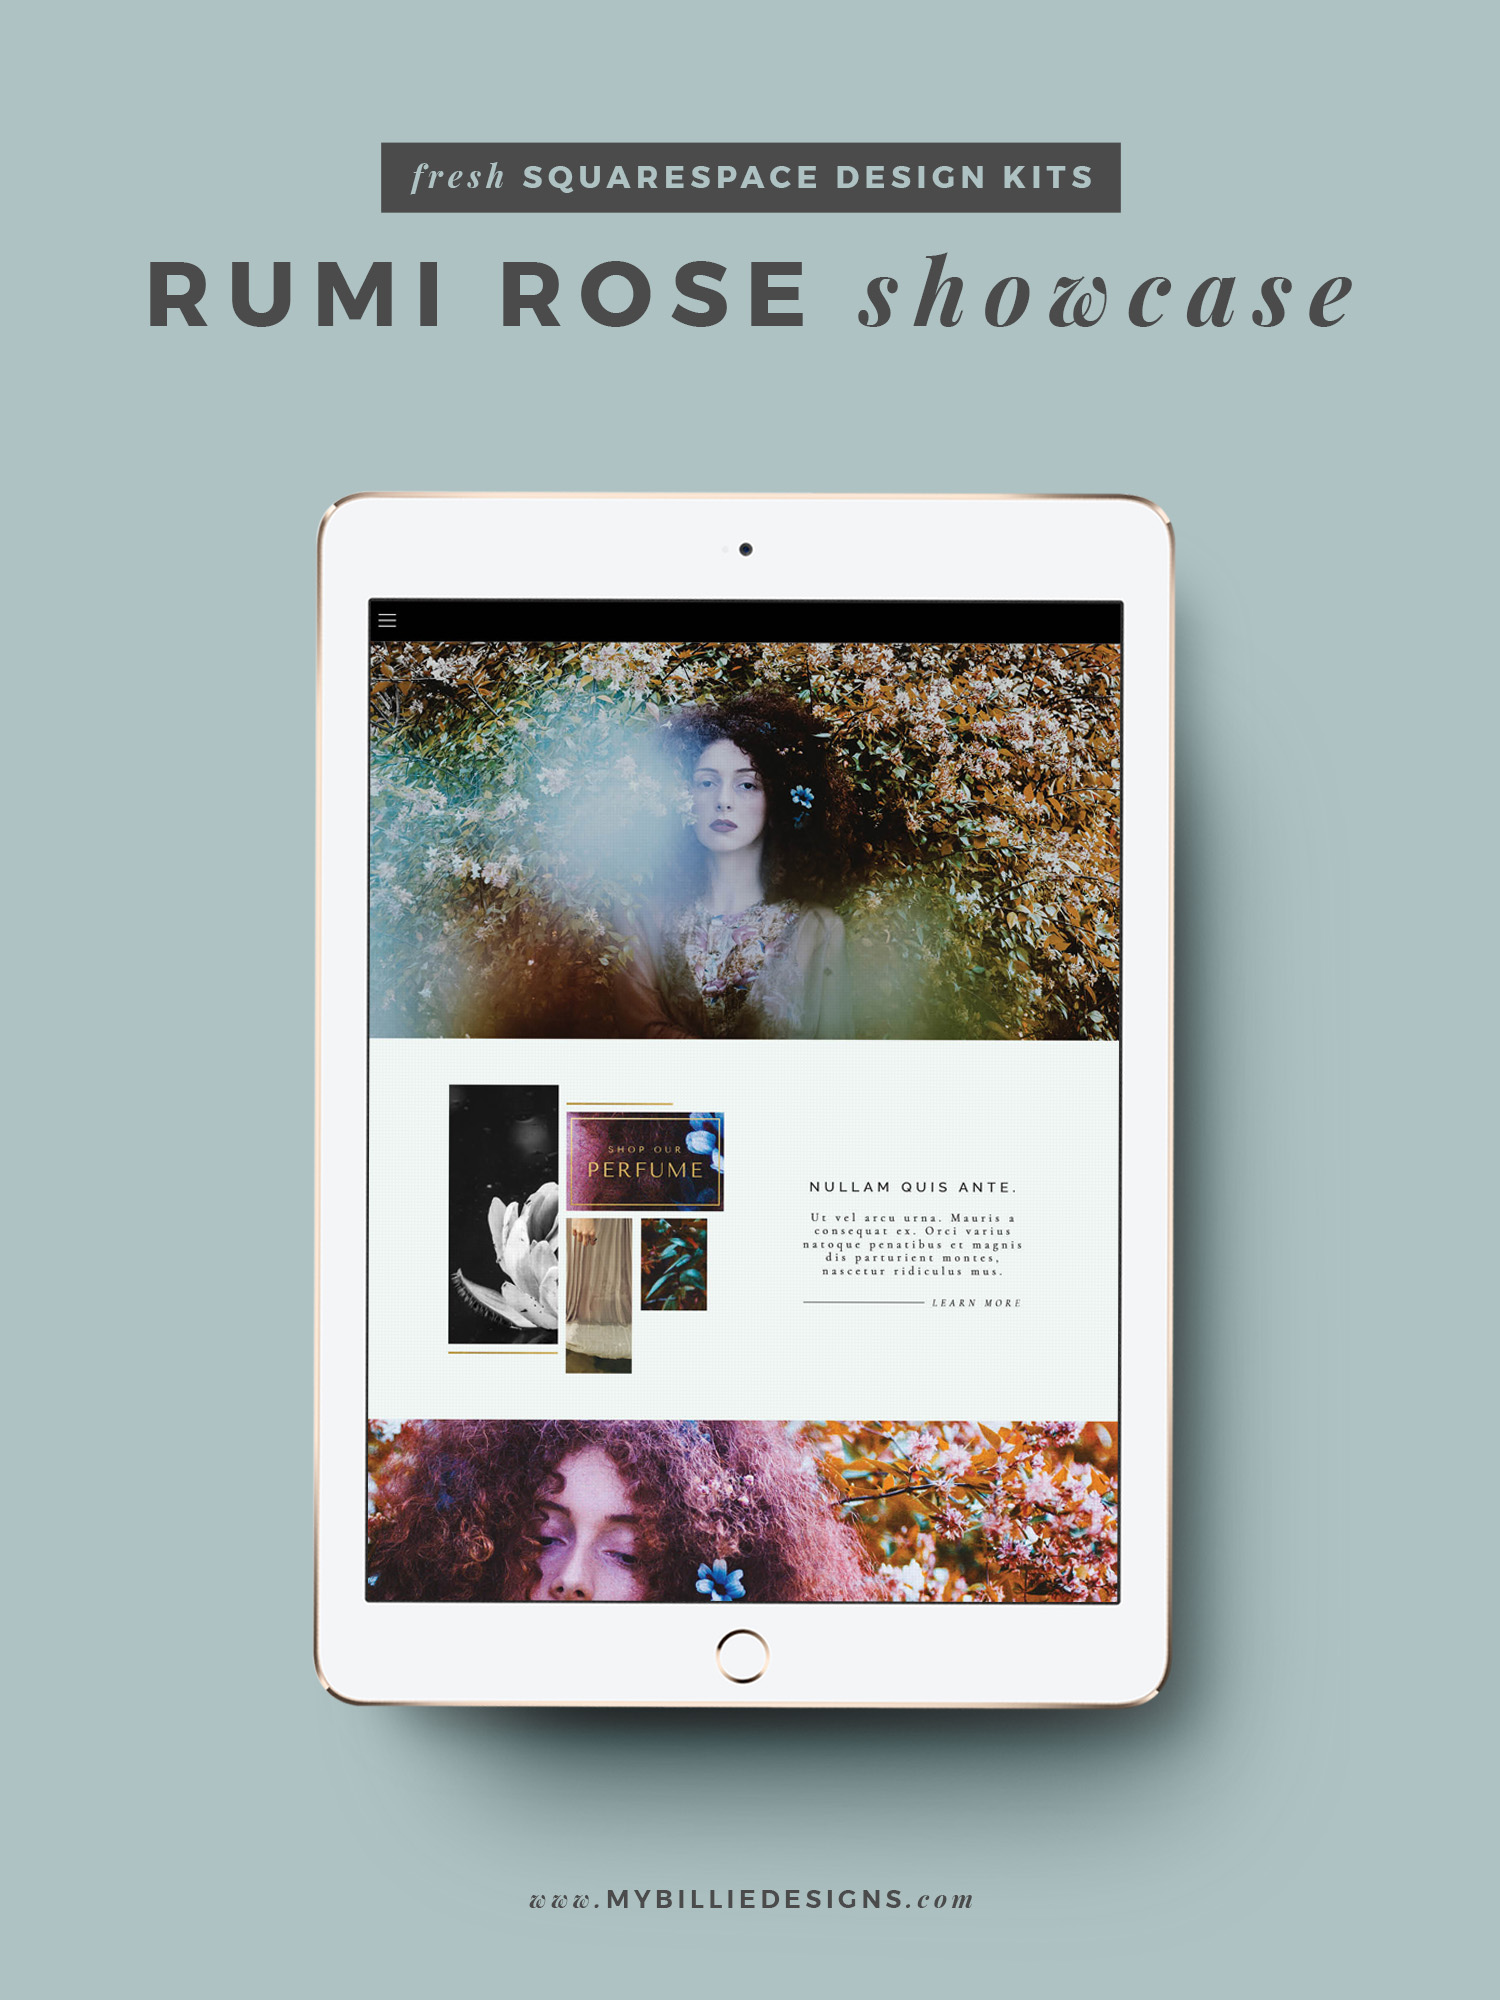 MBD Squarespace Design Kits | Rumi Rose Design + Customization Ideas